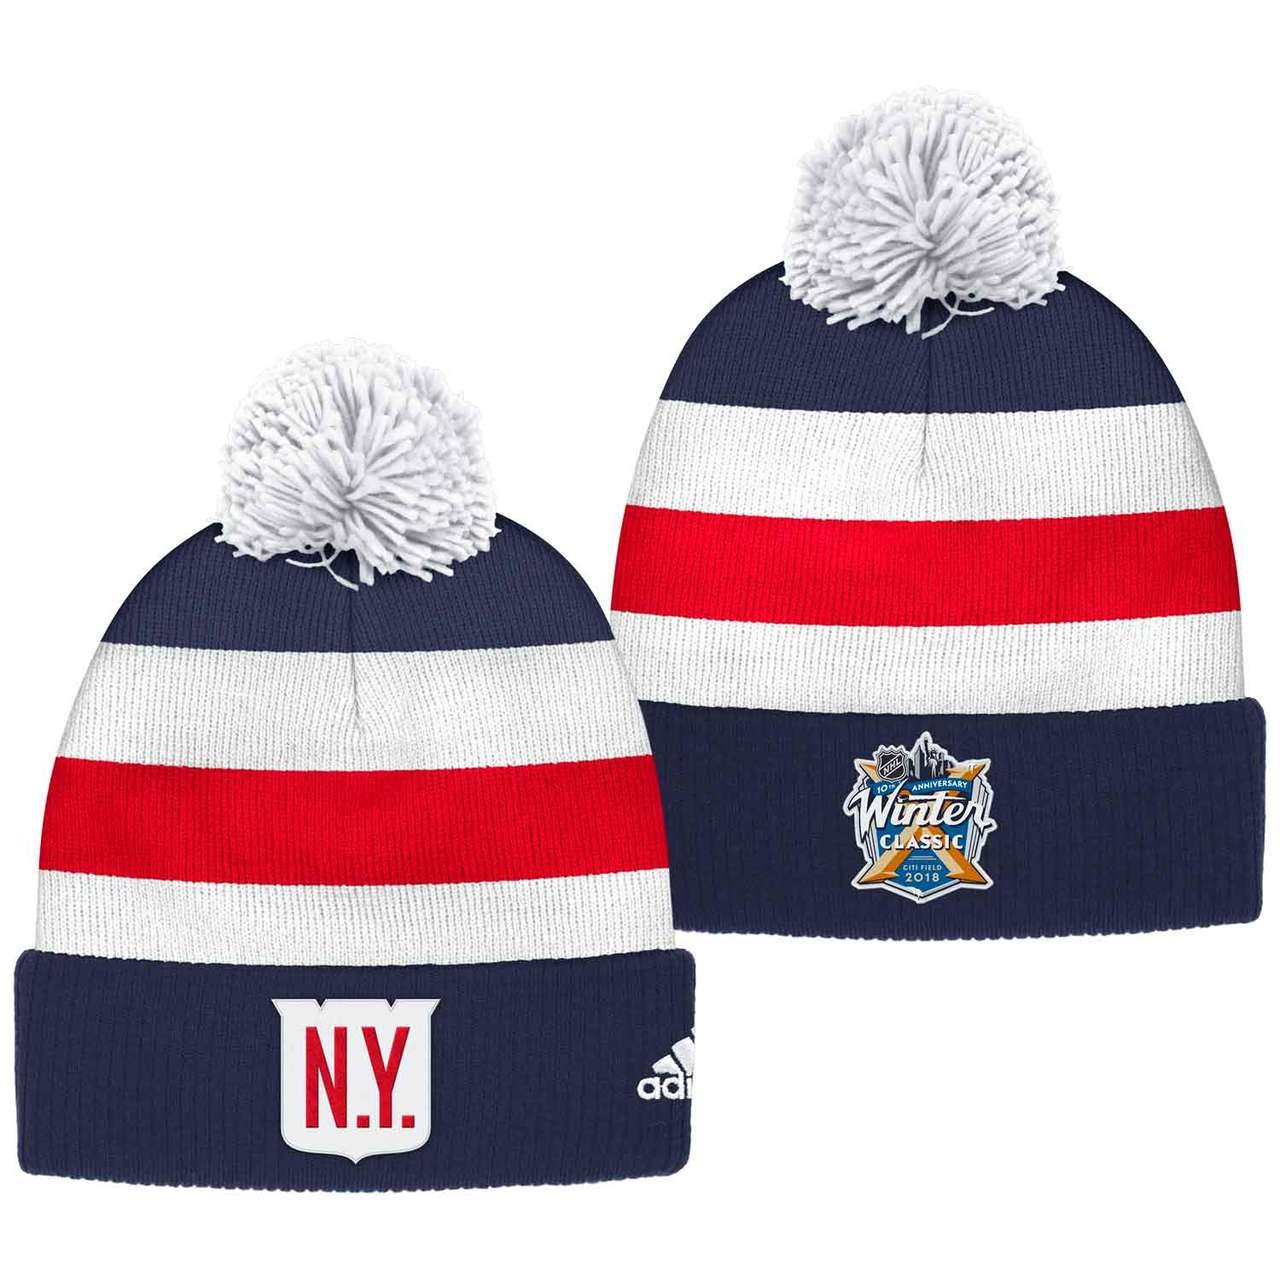 Amazon.com   New York Rangers 2018 Winter Classic Cuffed Pom Knit Players  Adidas Hat   Sports   Outdoors a4f6d73055a